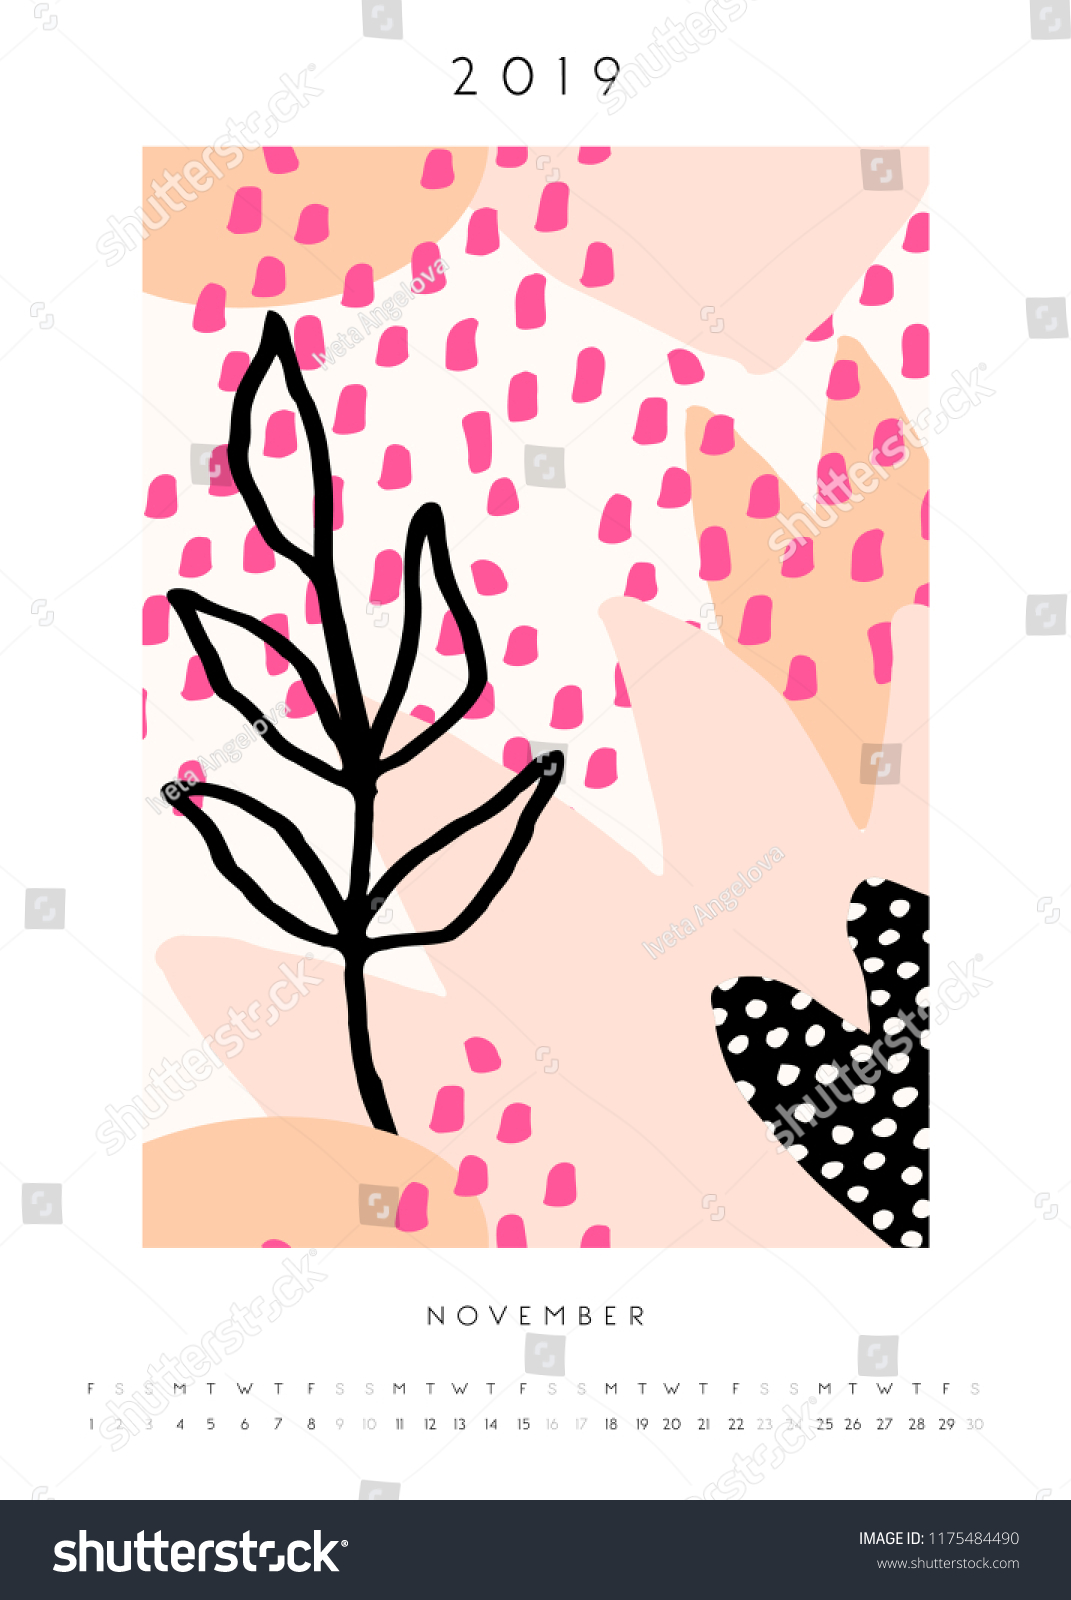 Printable A 4 Size November 2019 Calendar Stock Vector Royalty Free